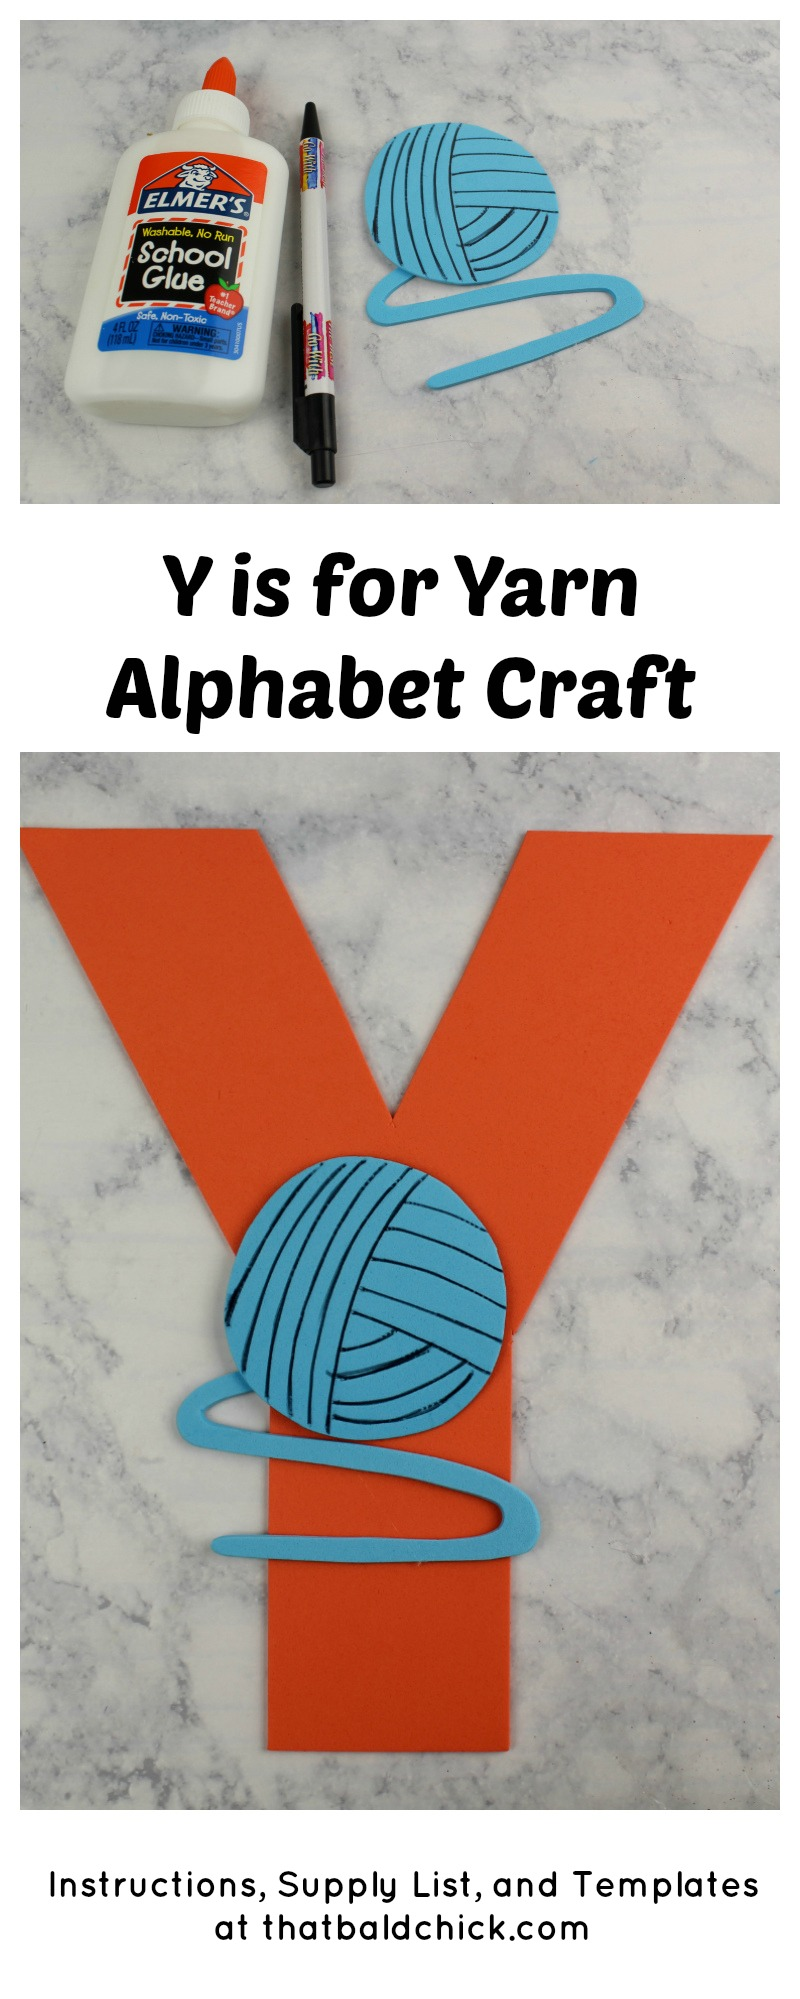 Y is for Yarn Alphabet Craft